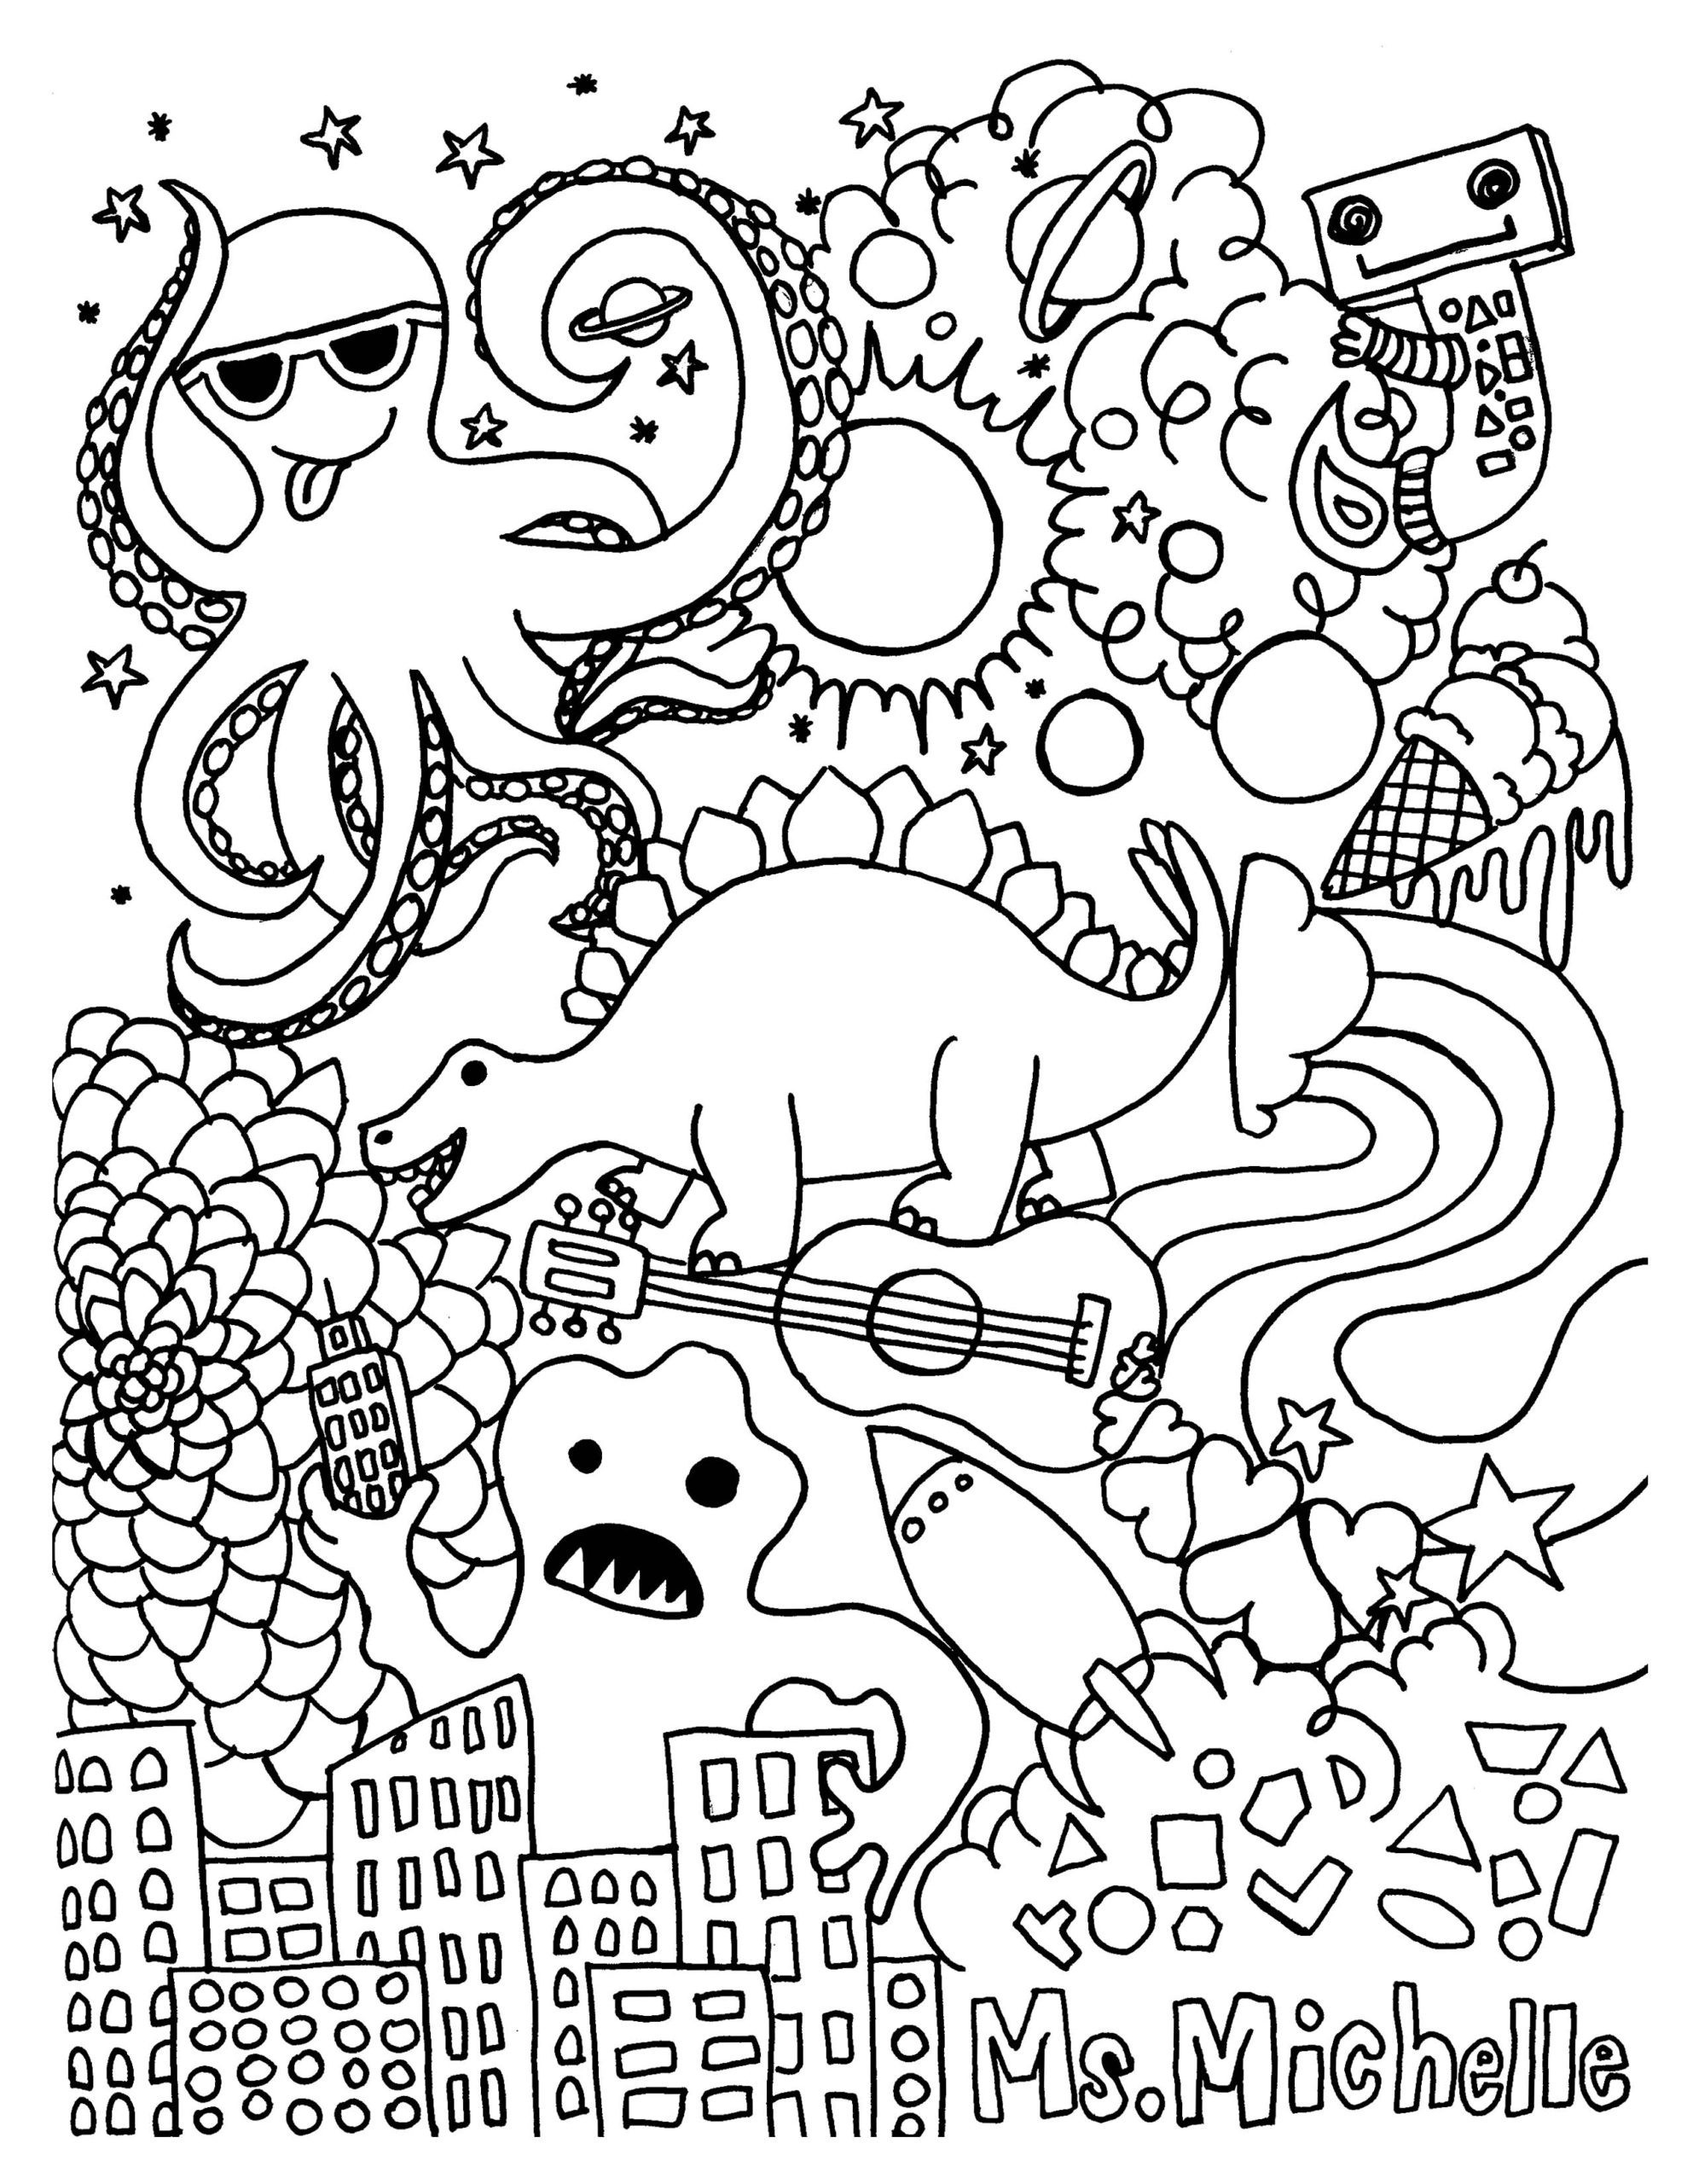 Coloring Worksheets for 3rd Grade Coloring Pages Free Color Worksheets for Preschoolers